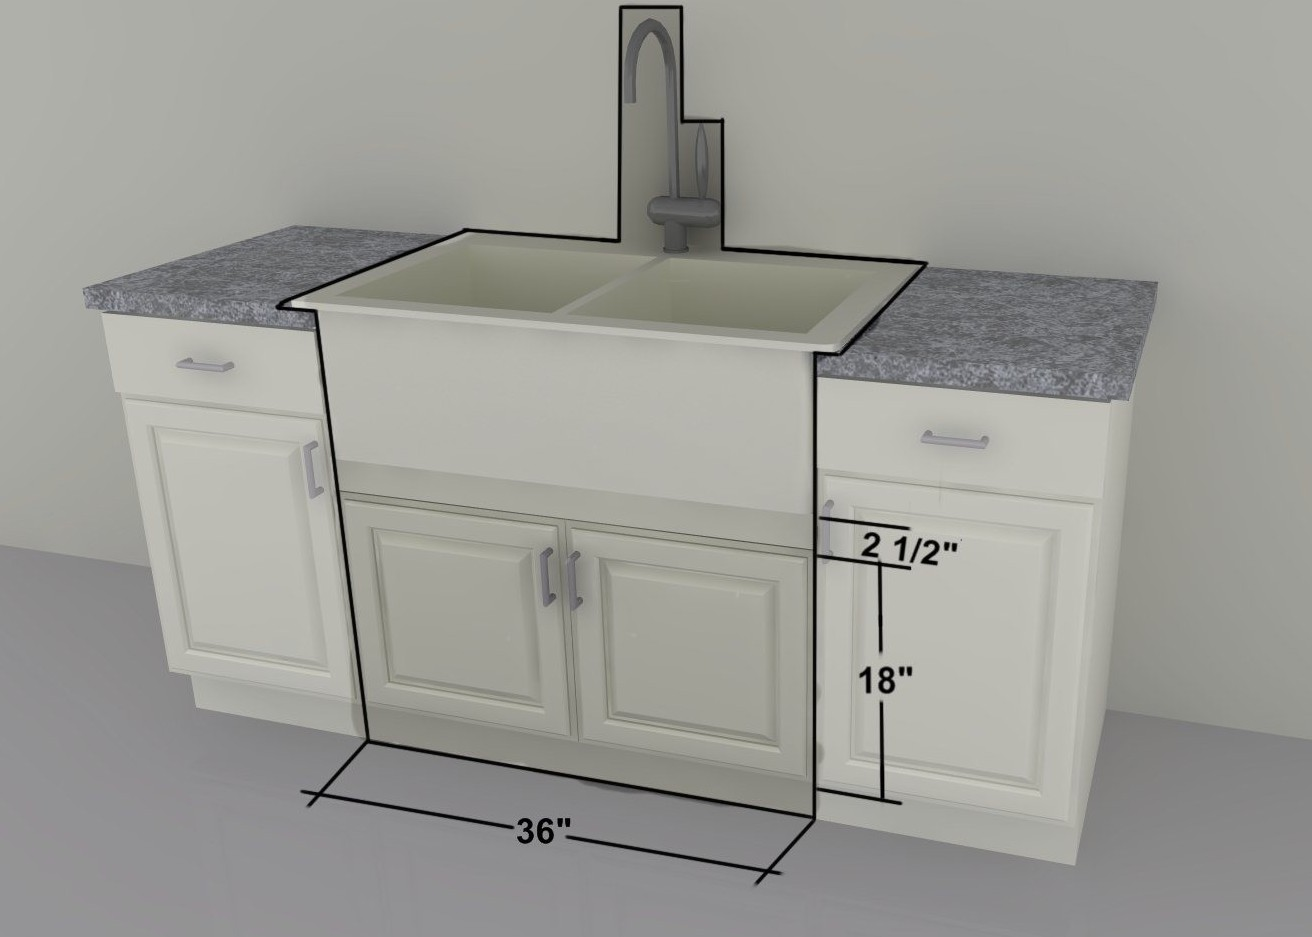 IKEA Custom Cabinets: 36u2033 Farm Sink Or Gas Cooktop Units